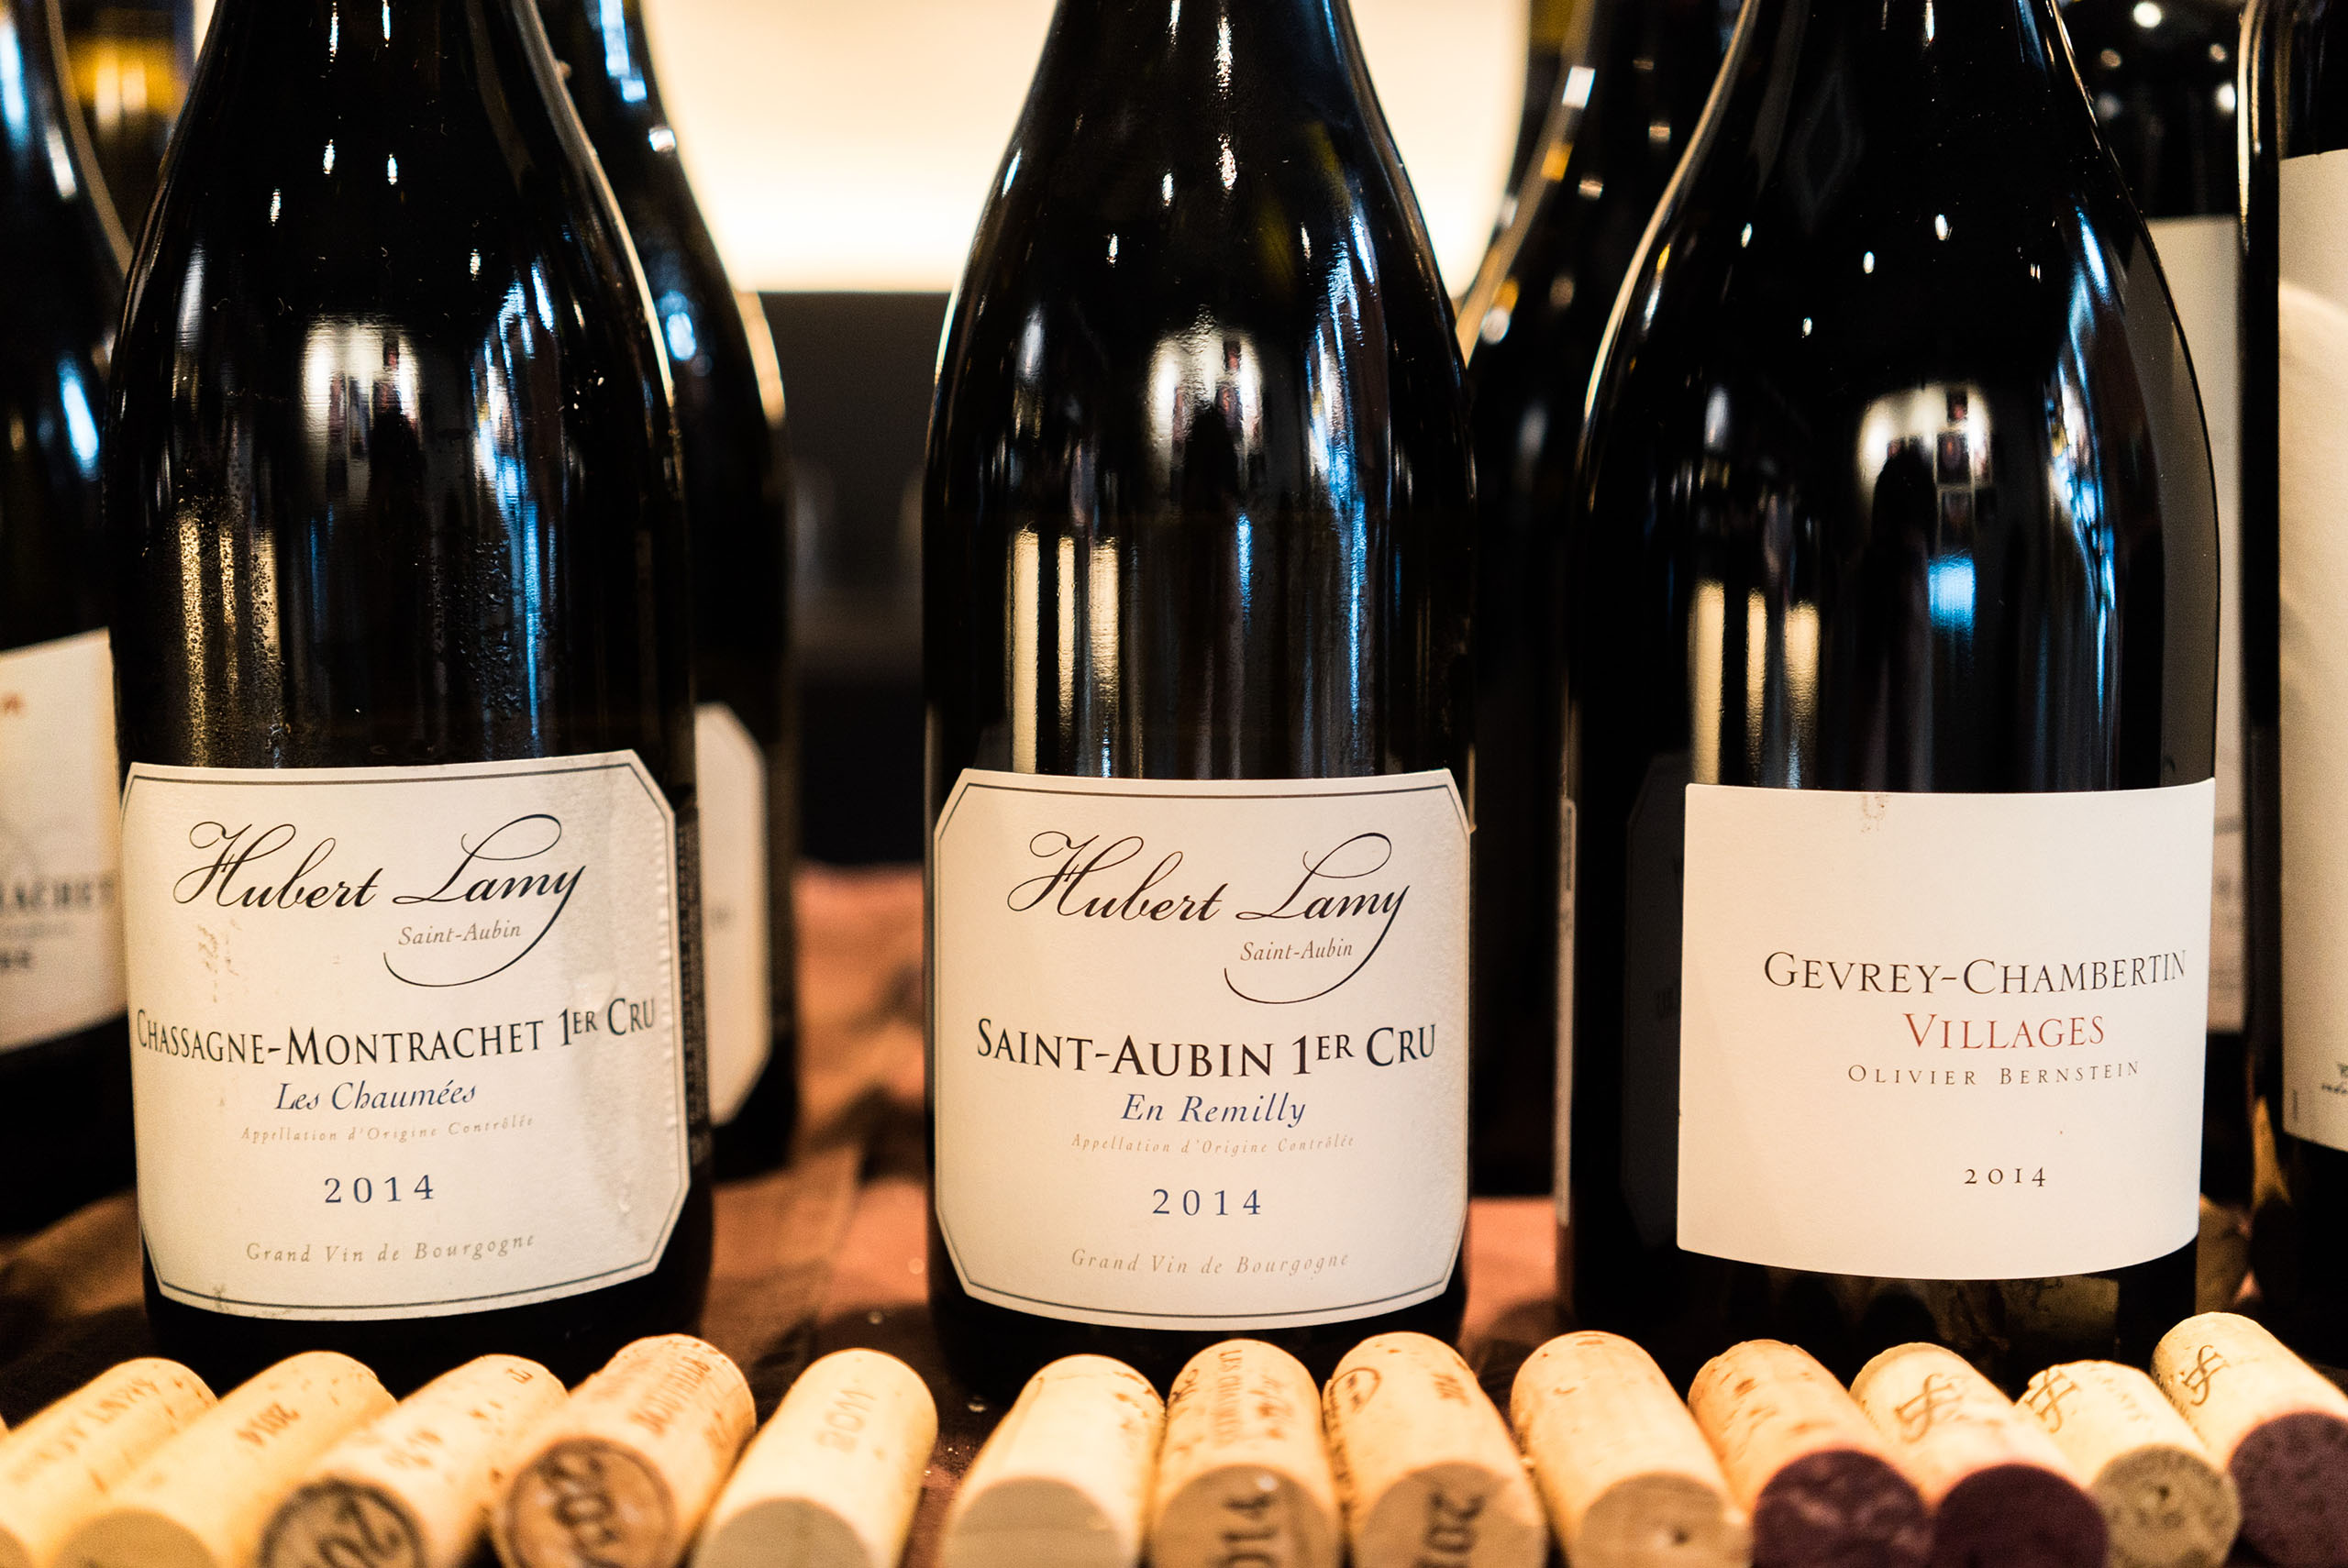 Hubert Lamy Saint-Aubin 1er Cru En Remilly 2014